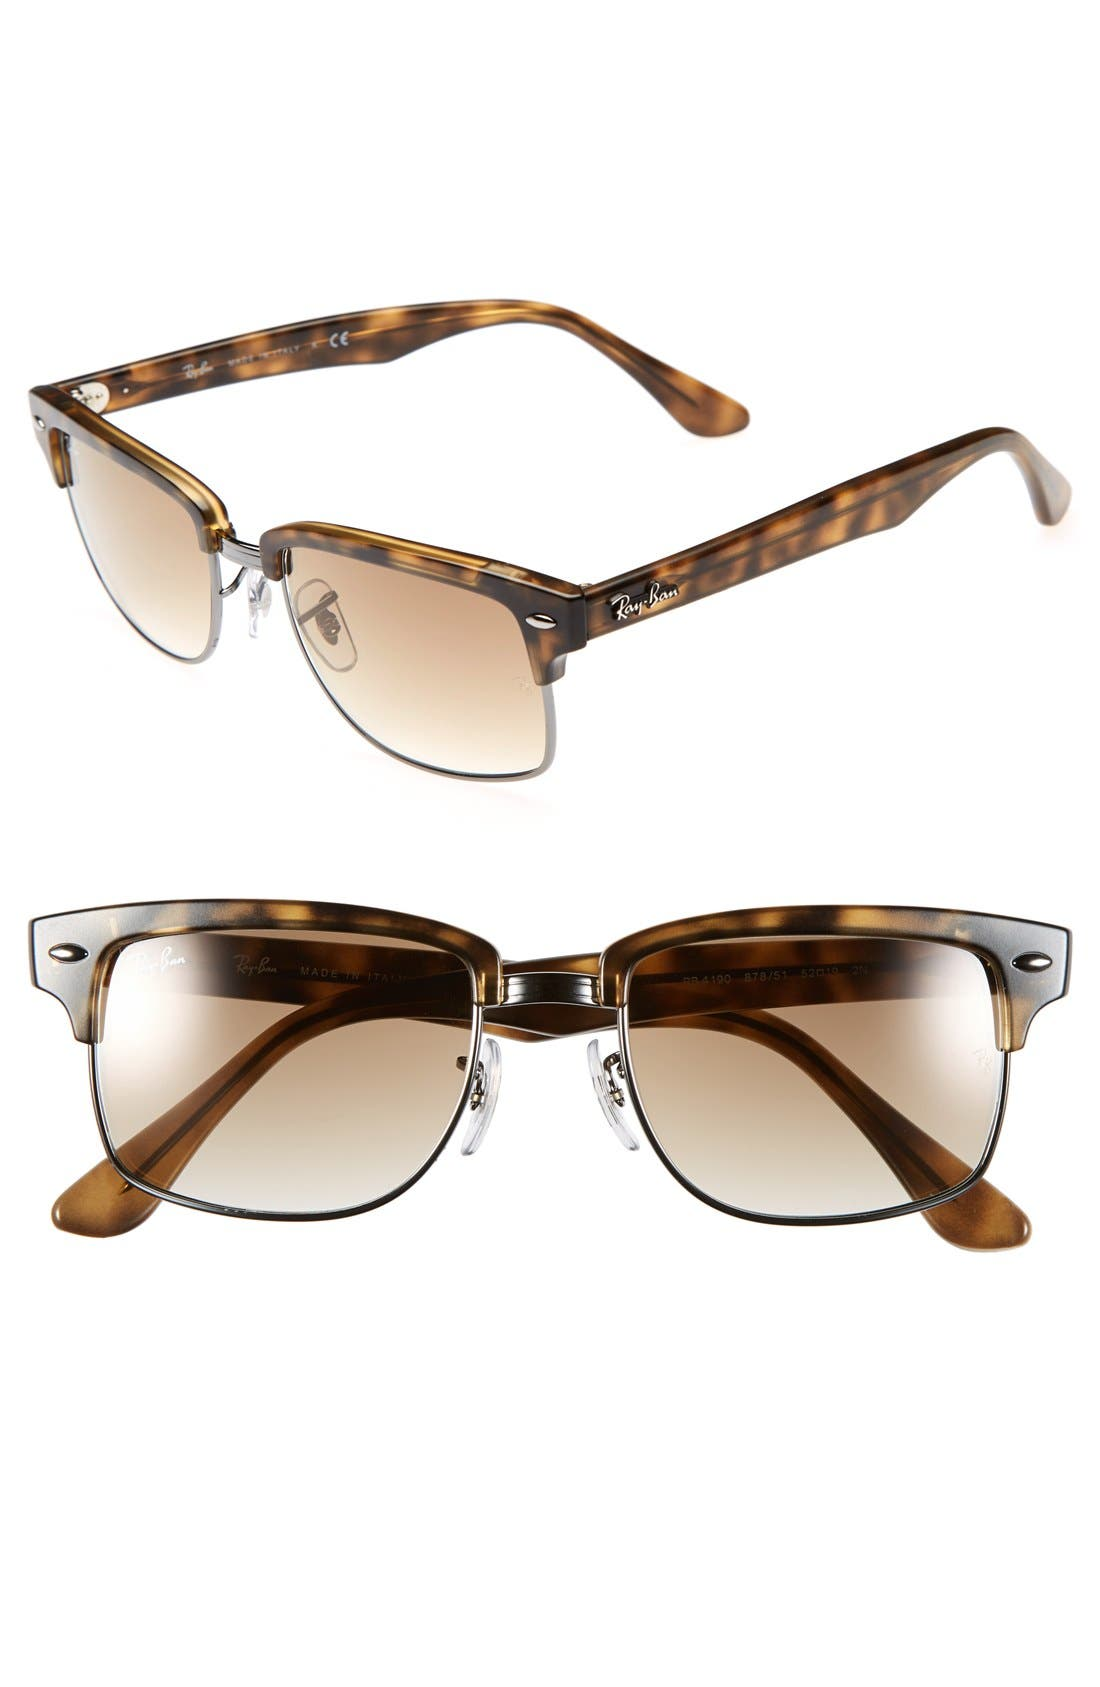 Alternate Image 1 Selected - Ray-Ban 'Clubmaster' Square 52mm Sunglasses